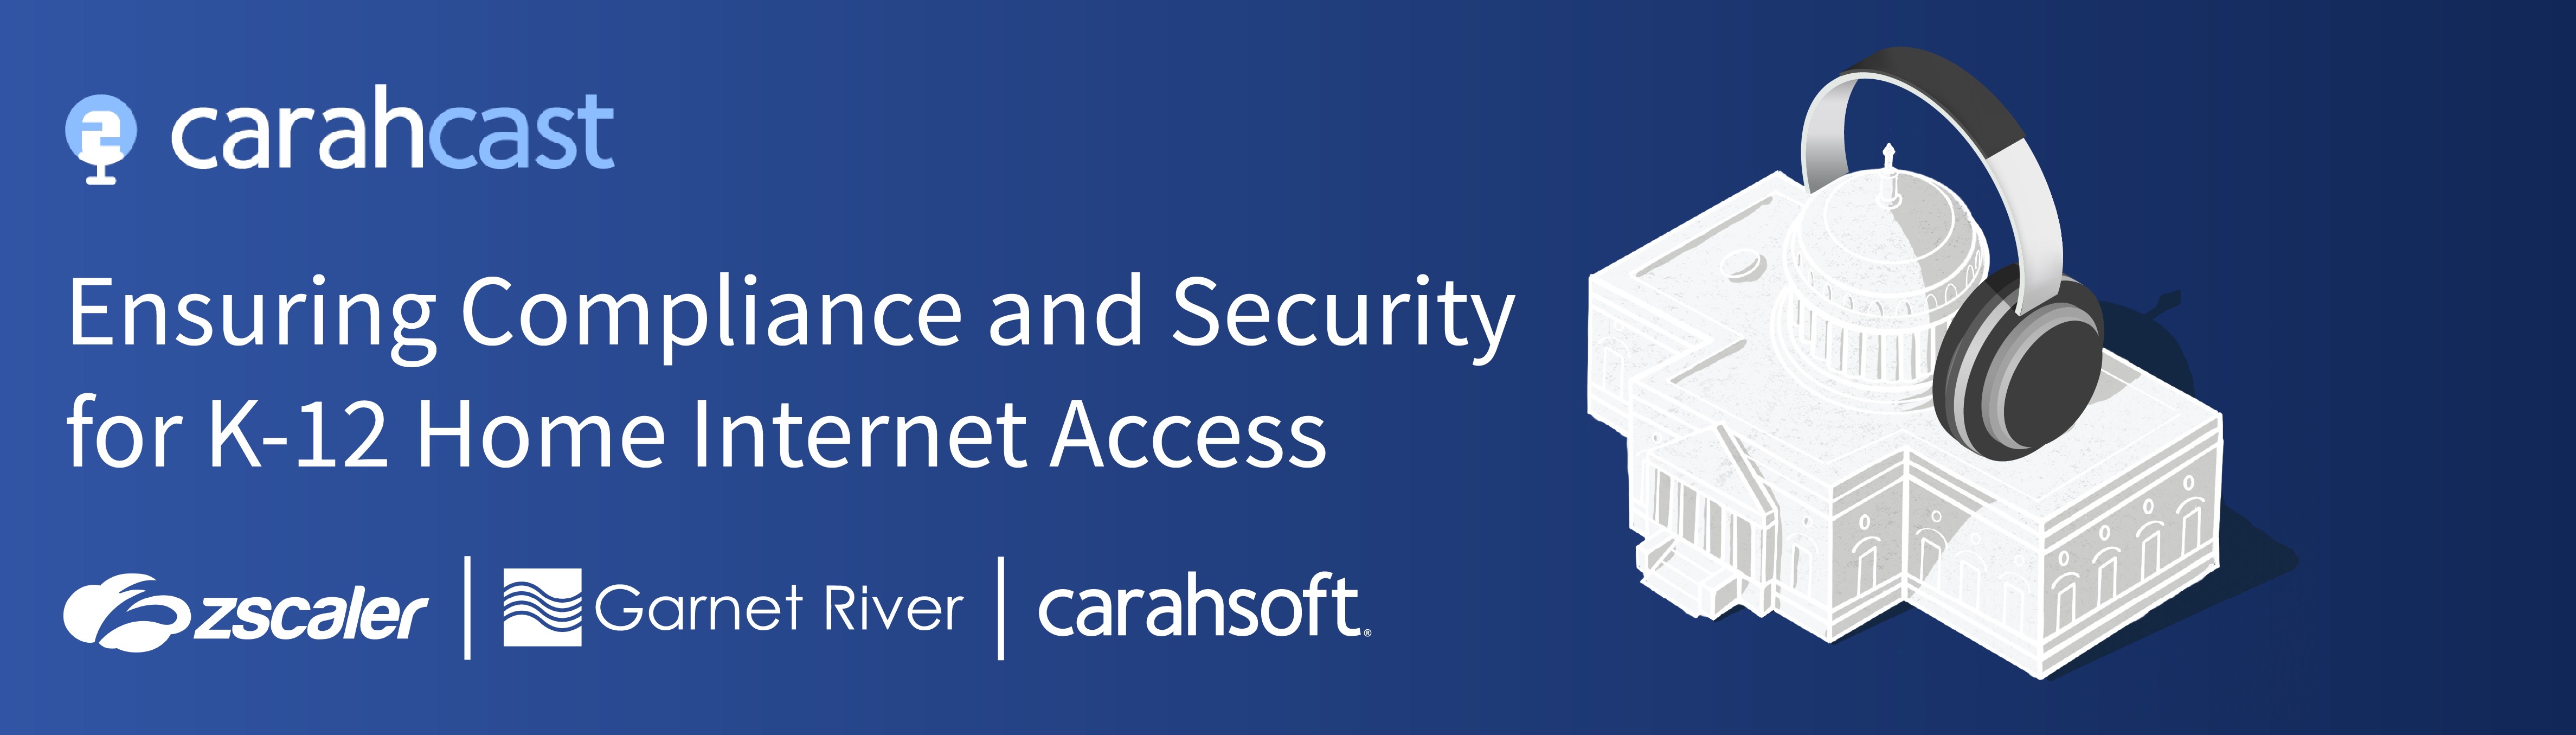 Ensuring Compliance and Security for K-12 Home Internet Access-05.png